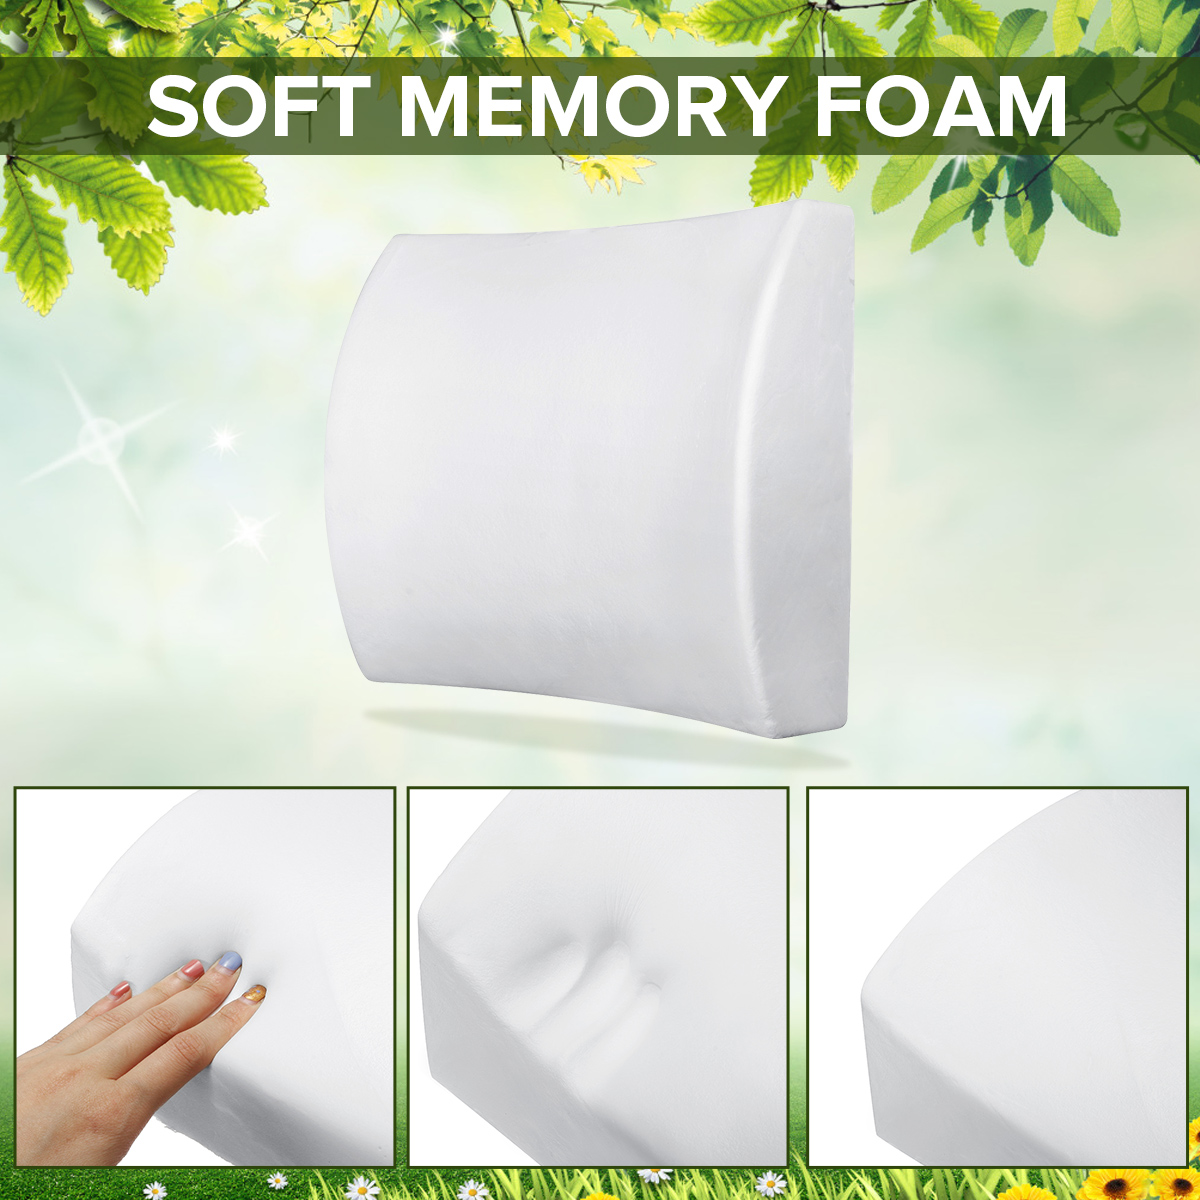 6 Color Lumbar Pillows Made Of Soft Foam For Car Seat To Support And Relieve Back Pain 2